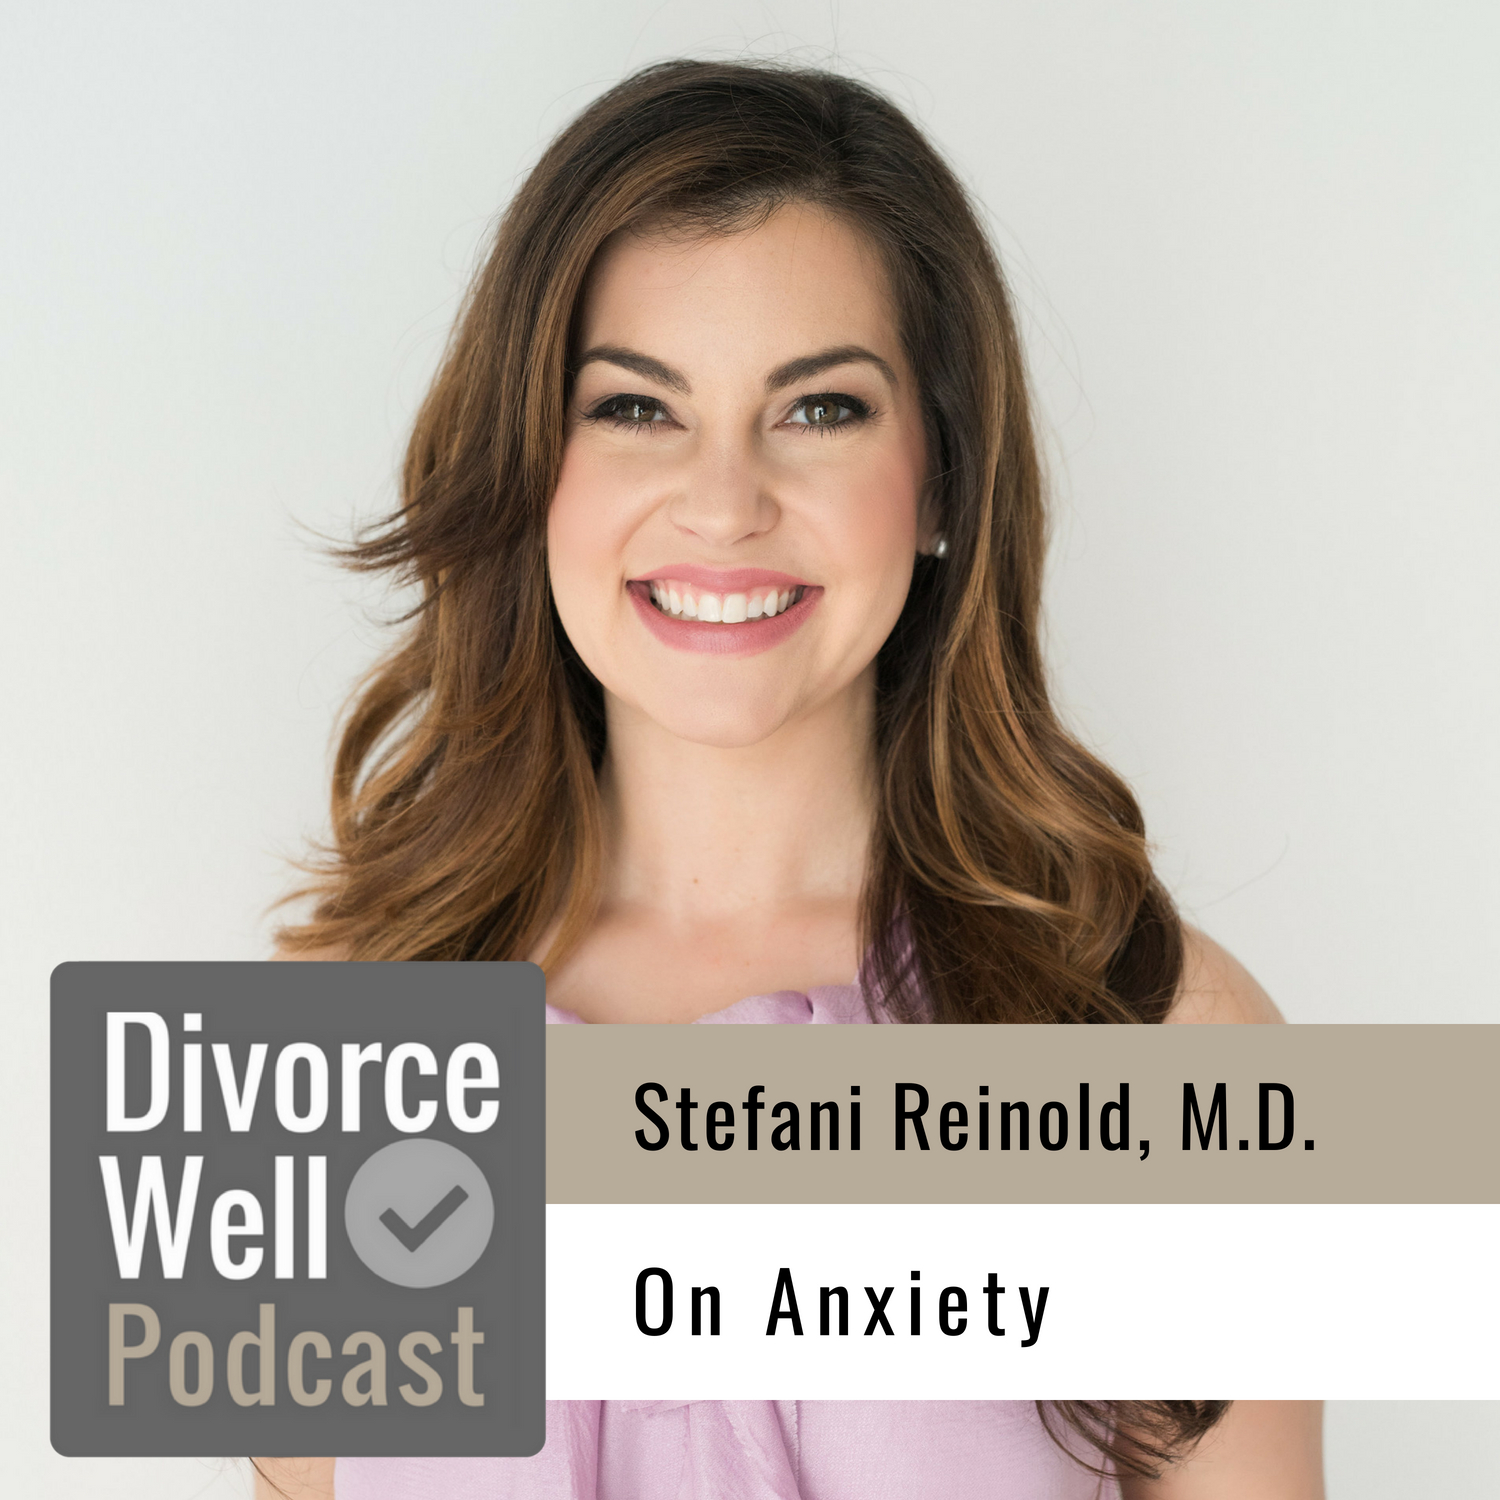 Stefani Reinold on the Divorce Well Podcast about anxiety during separation and divorce